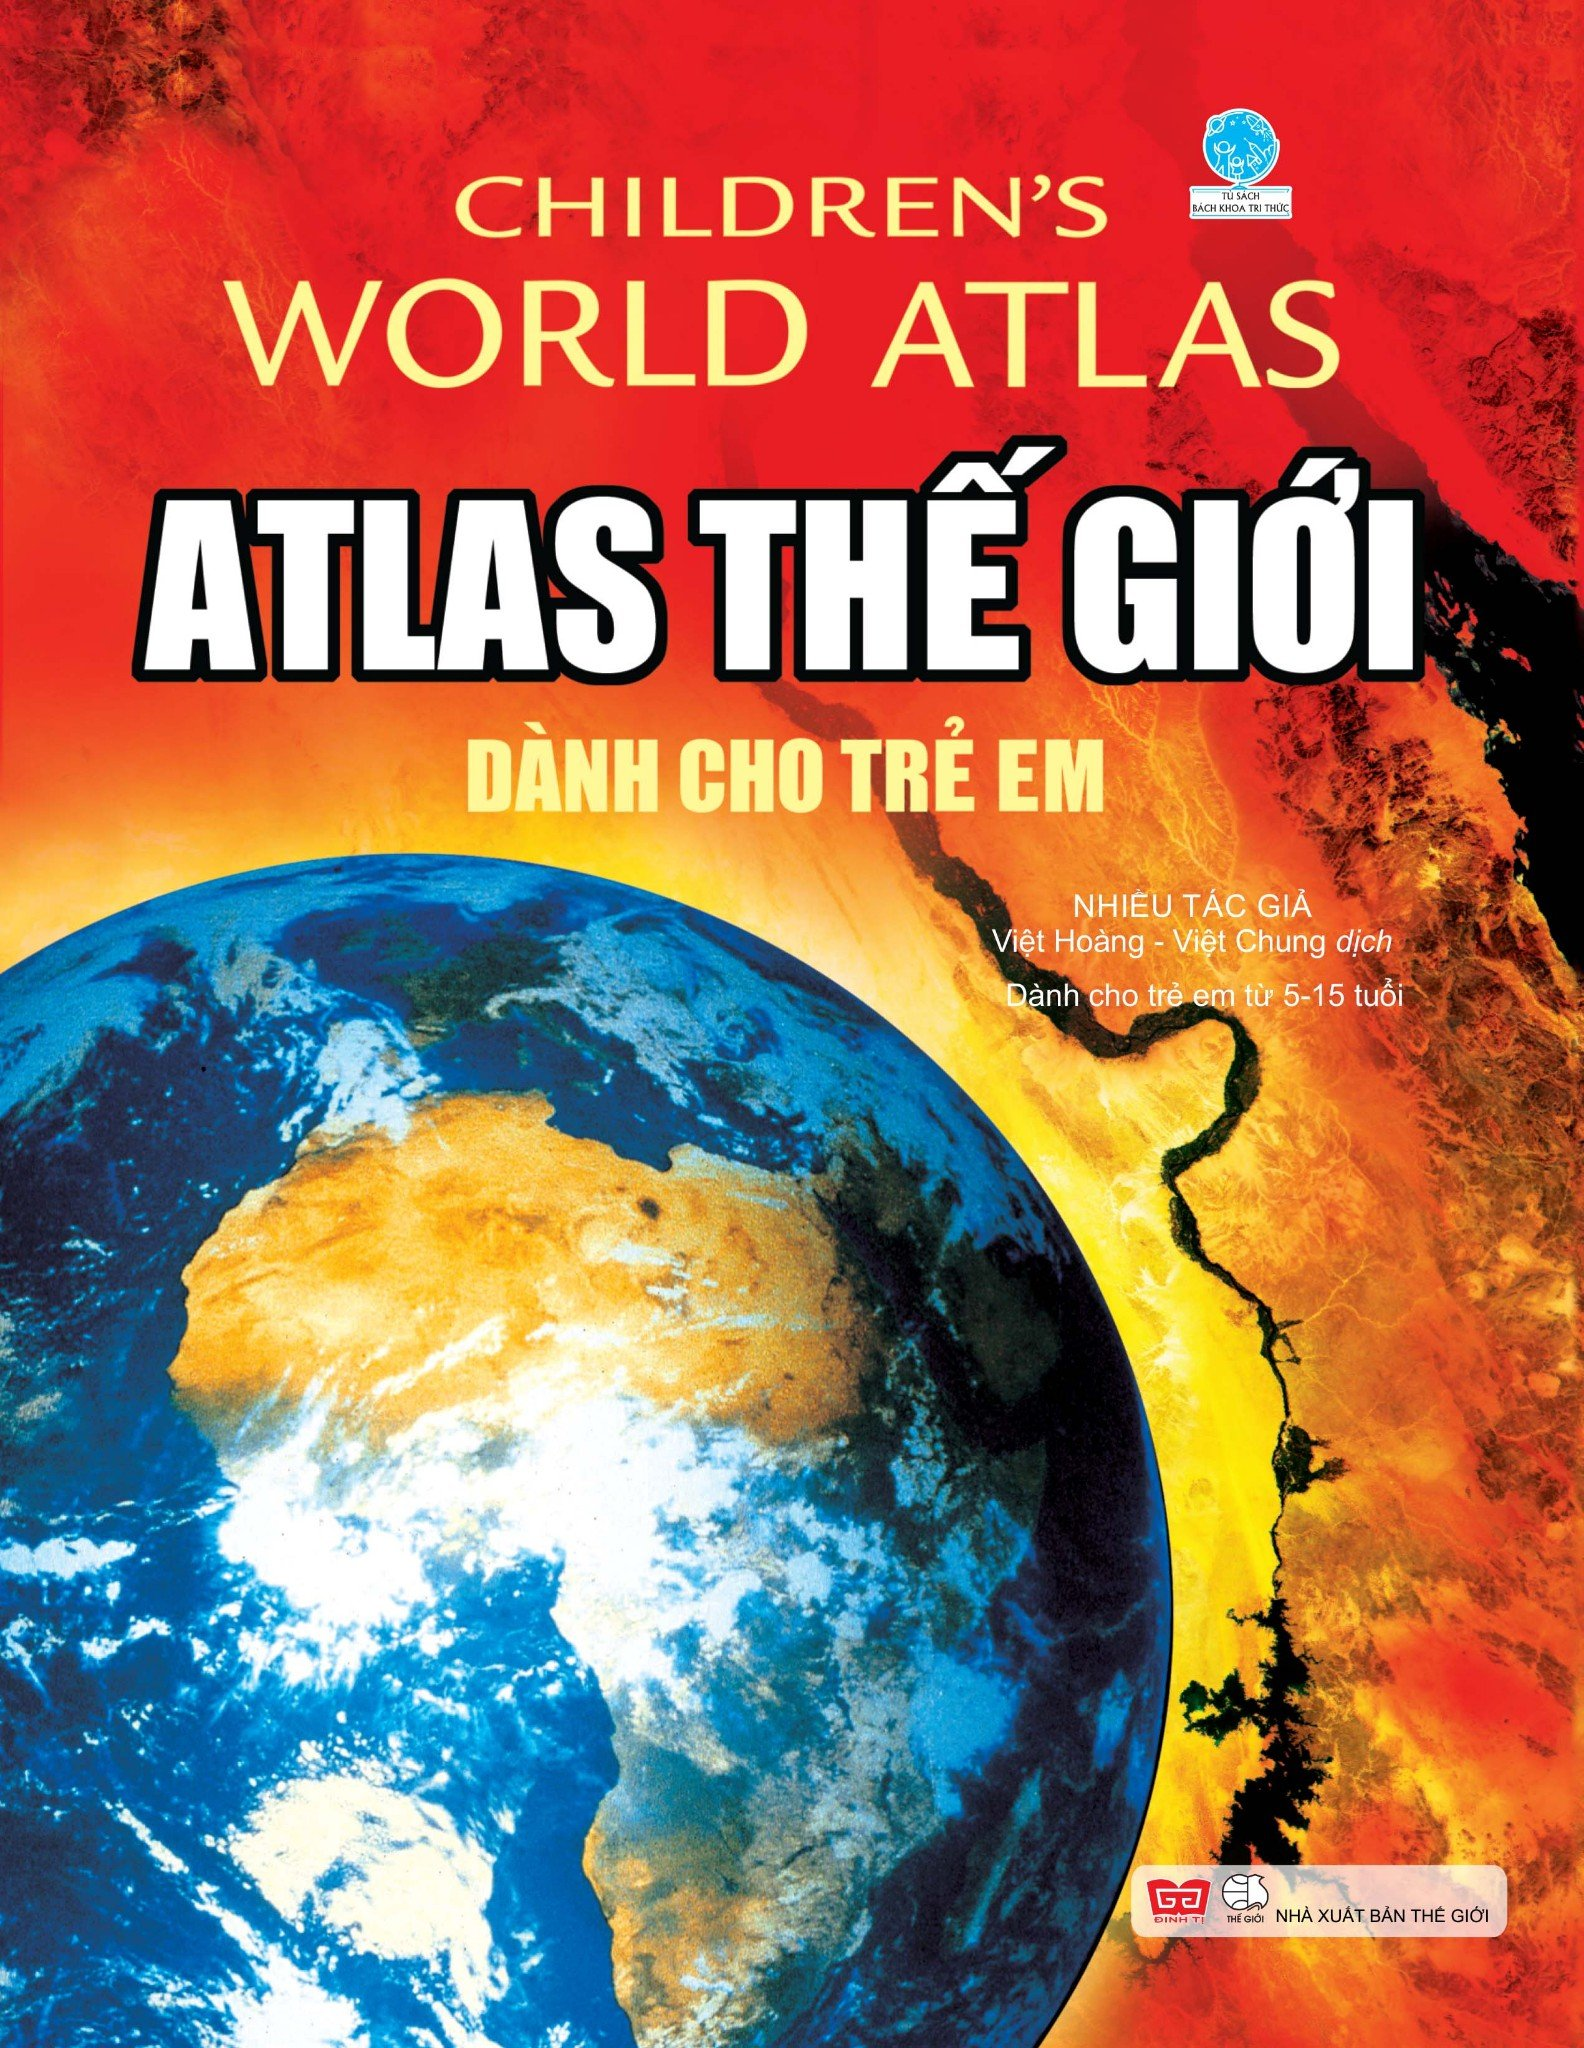 Atlas th.giới dành cho trẻ em (Tái bản 2018)